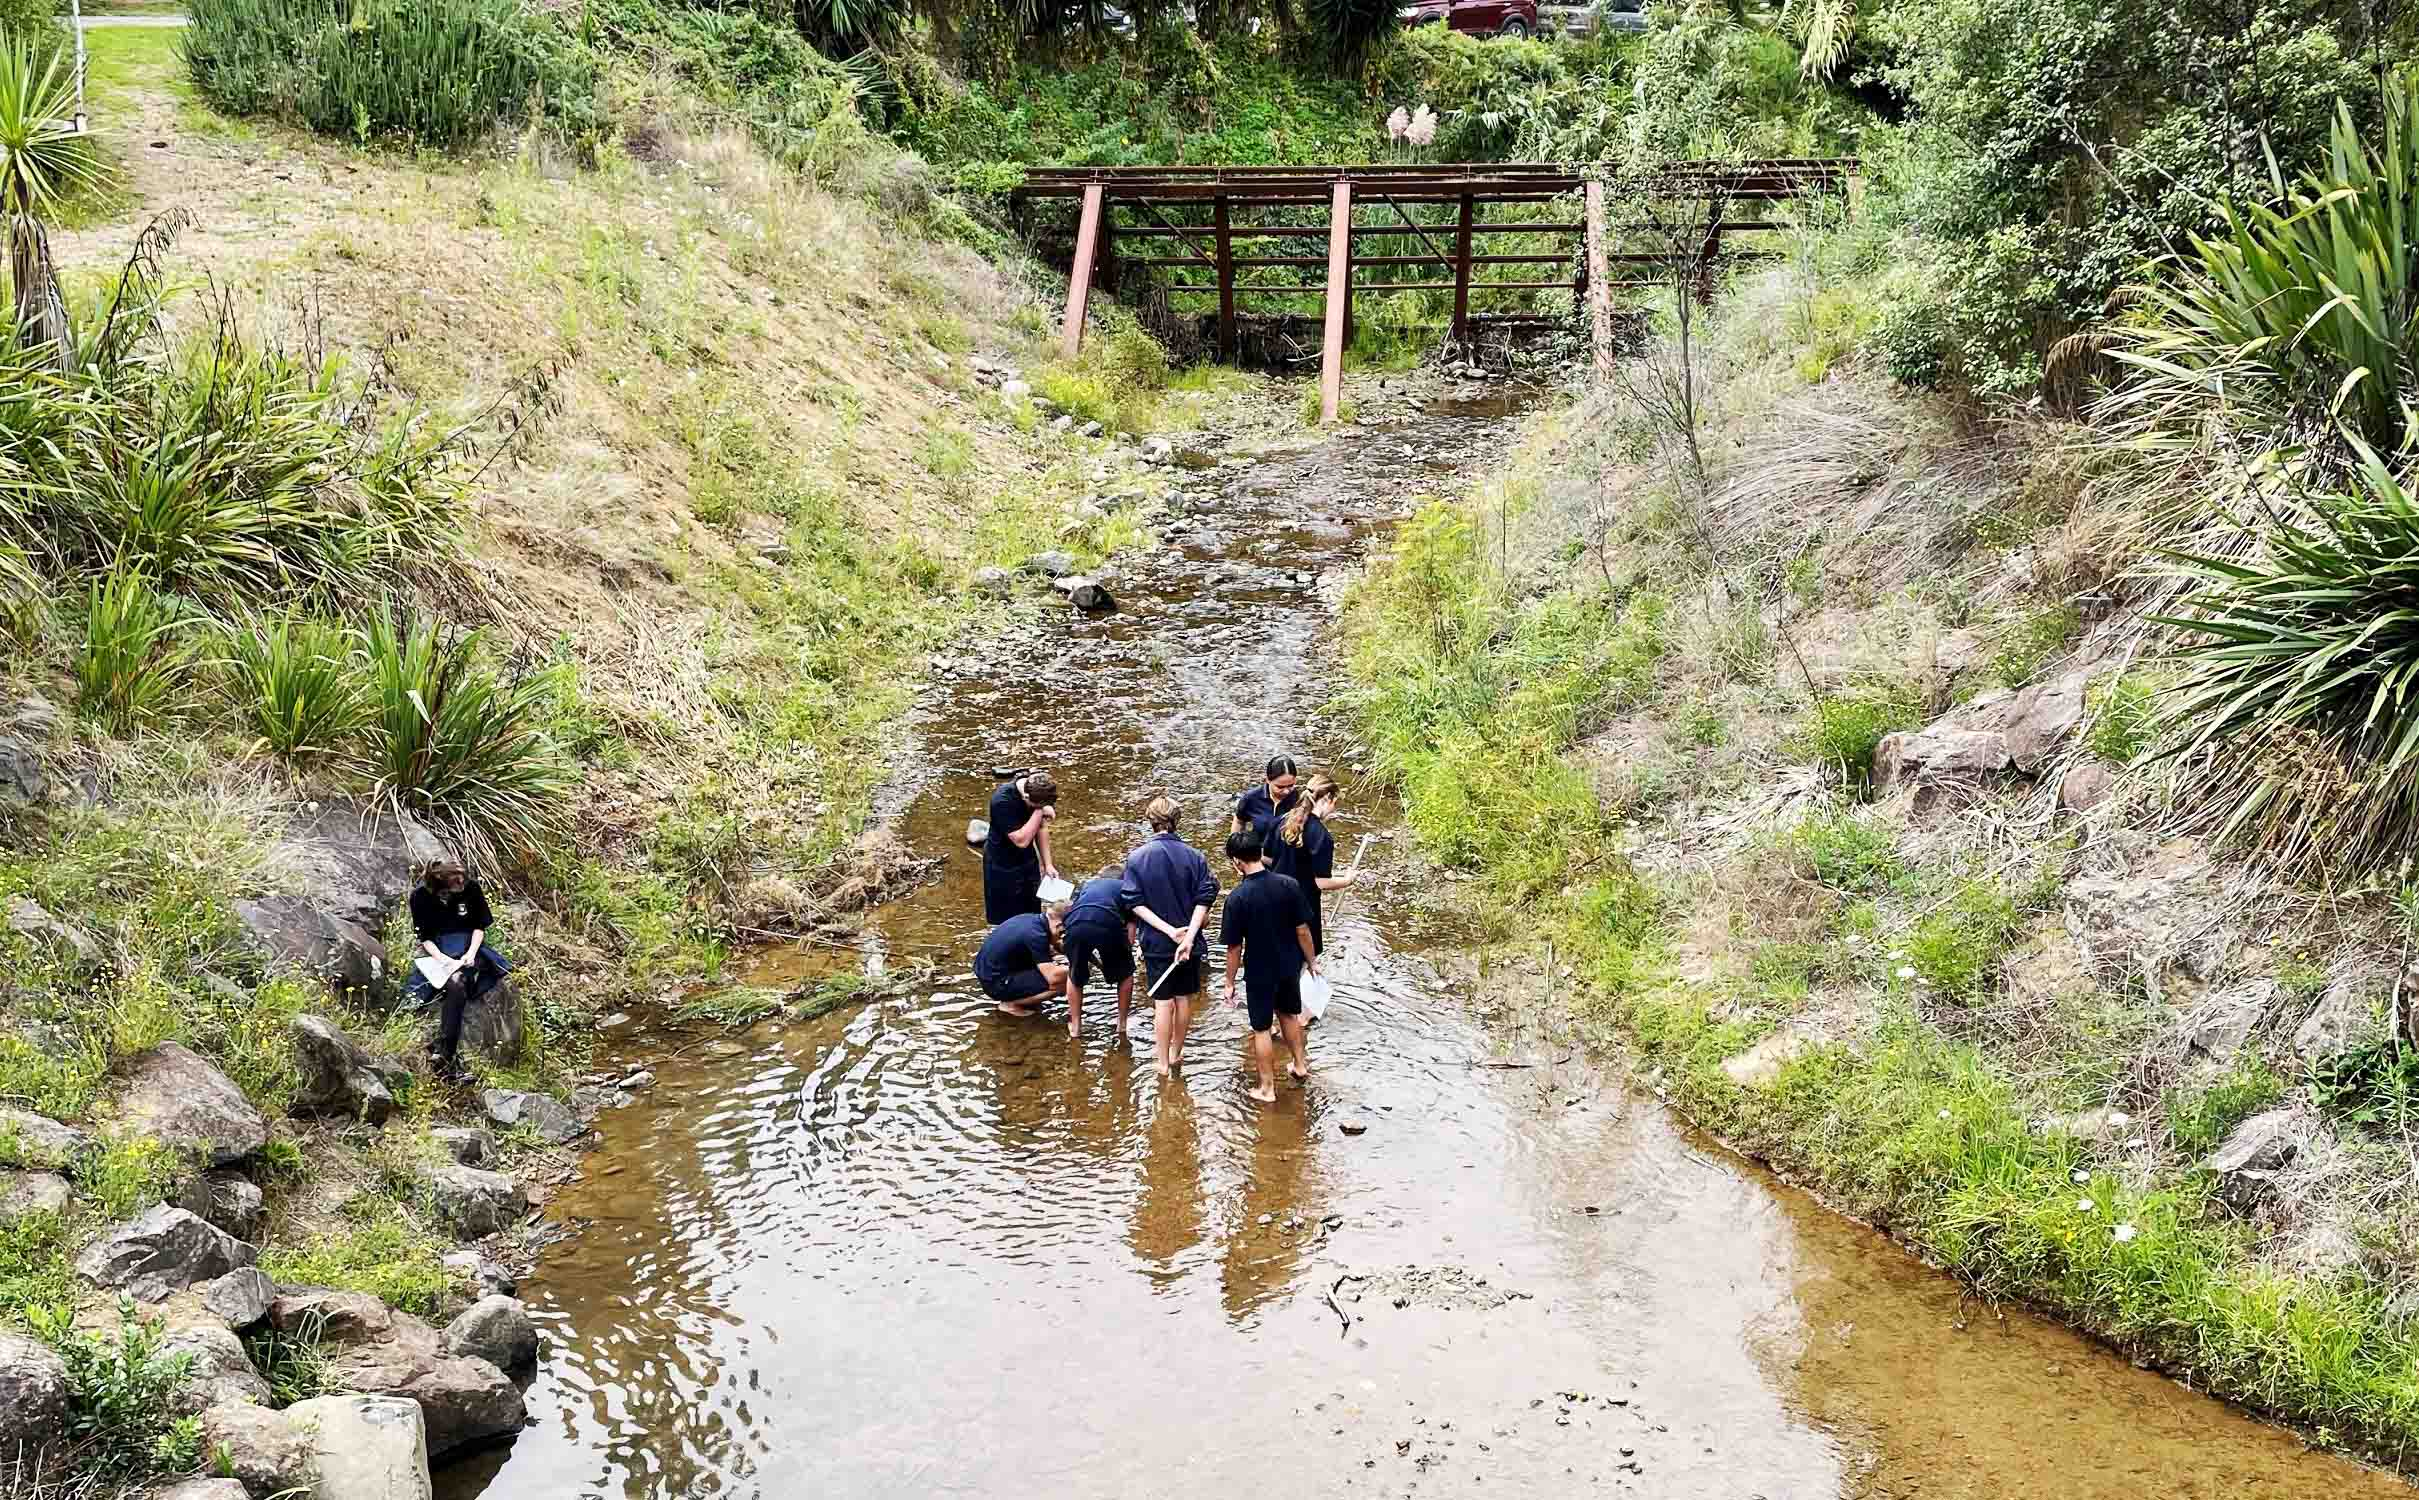 Read more about the article Environment DNA tests planned for region's streams